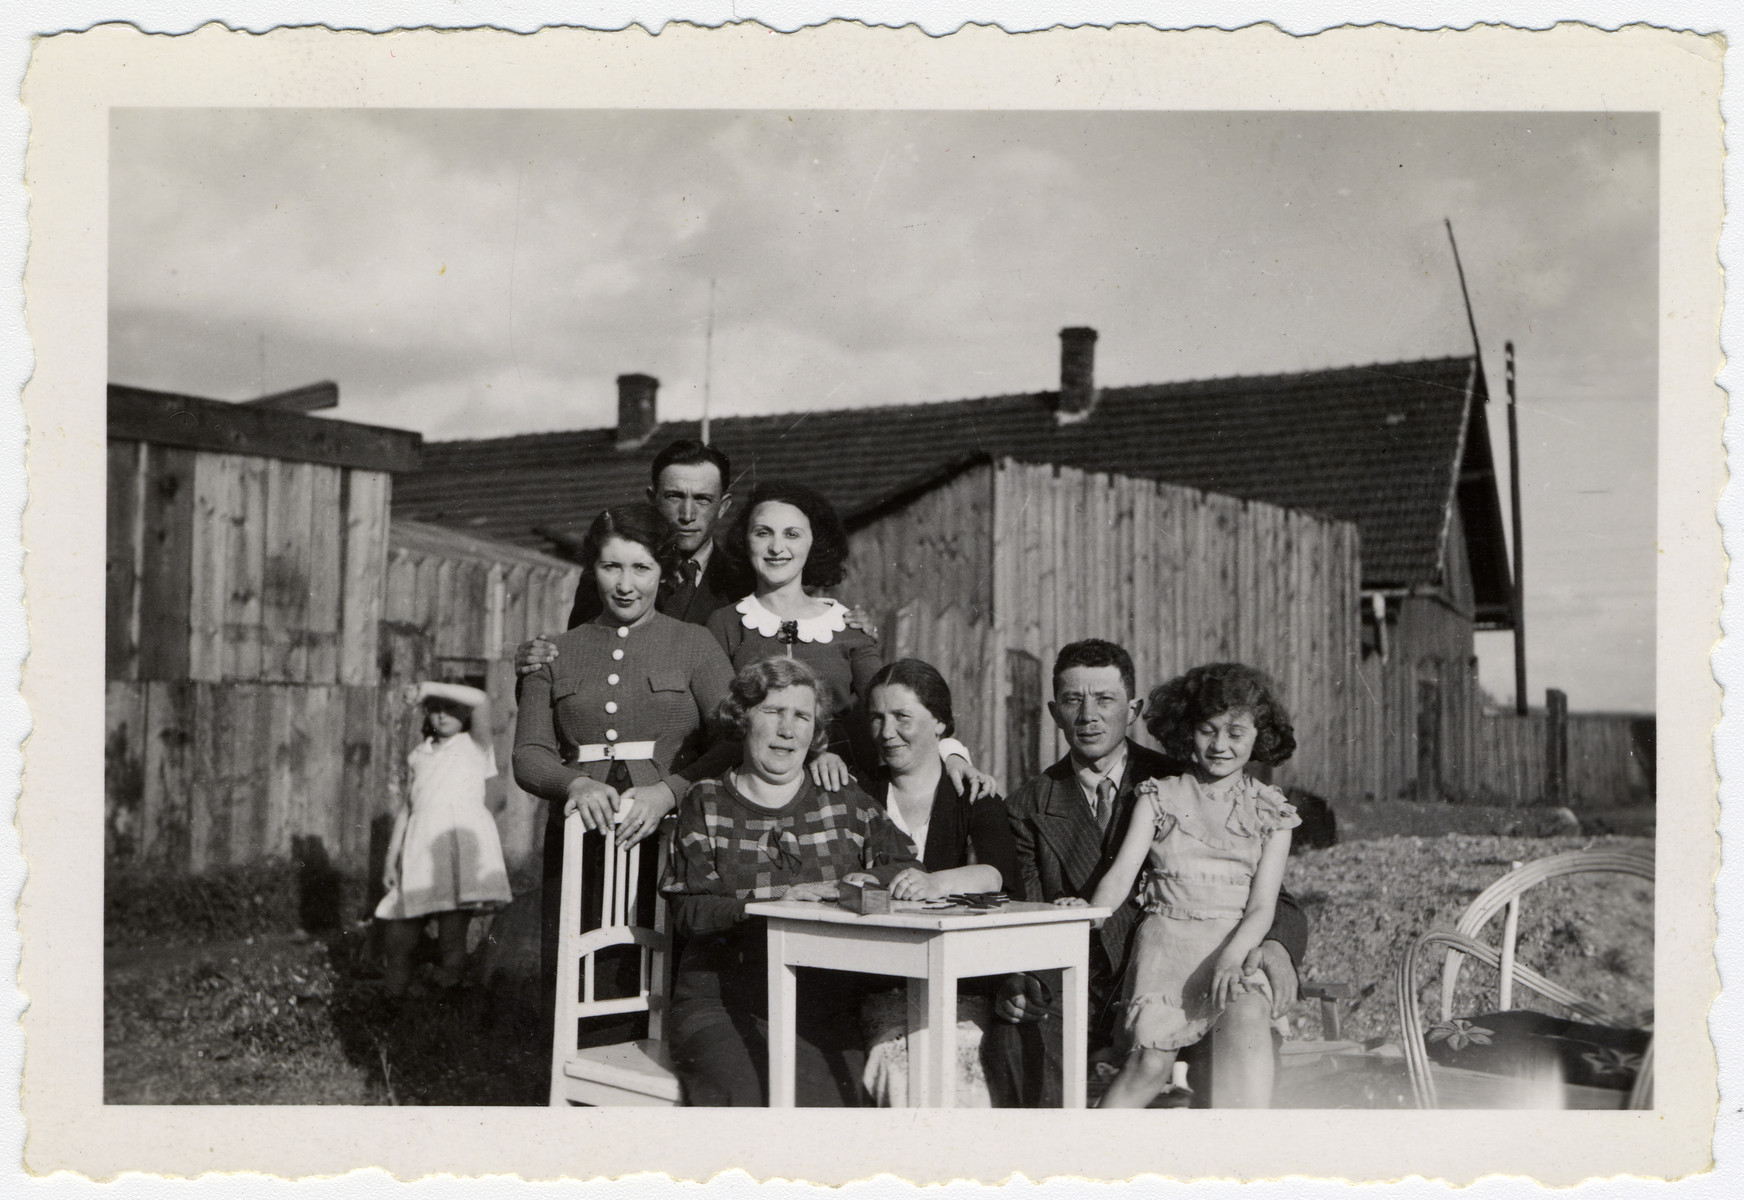 Group portrait of the Honig and Rozenblit family seated by a table outdoors.  Cesia Honig on right seated on father, Naftali Honig's lap. To the left of him sits mother Malka Honig. Alongside them stand various unidentified relatives.